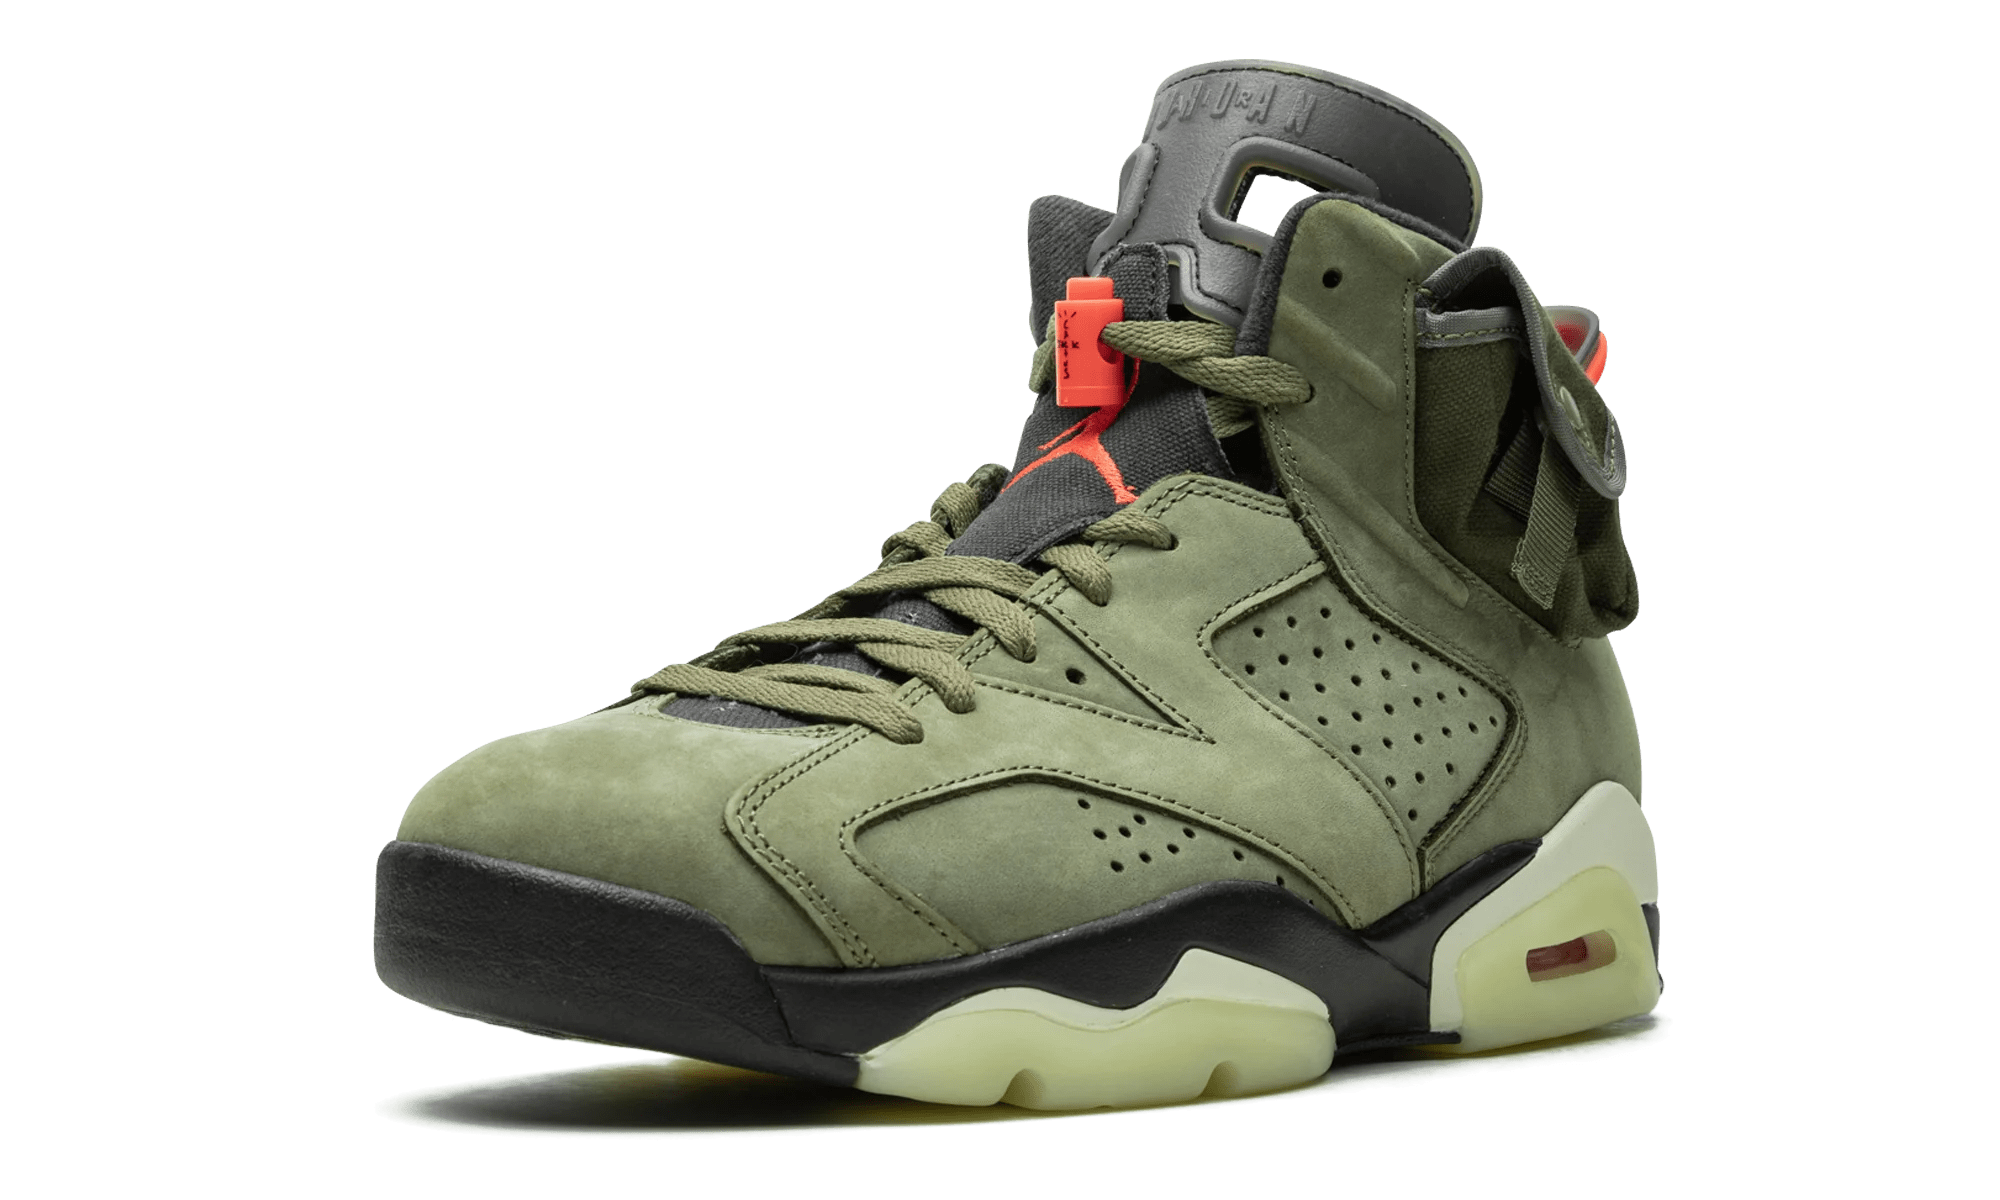 Travis Scott x Air Jordan 6 'Medium Olive/Black/Sail/University Red' CN1084-200 (Front)